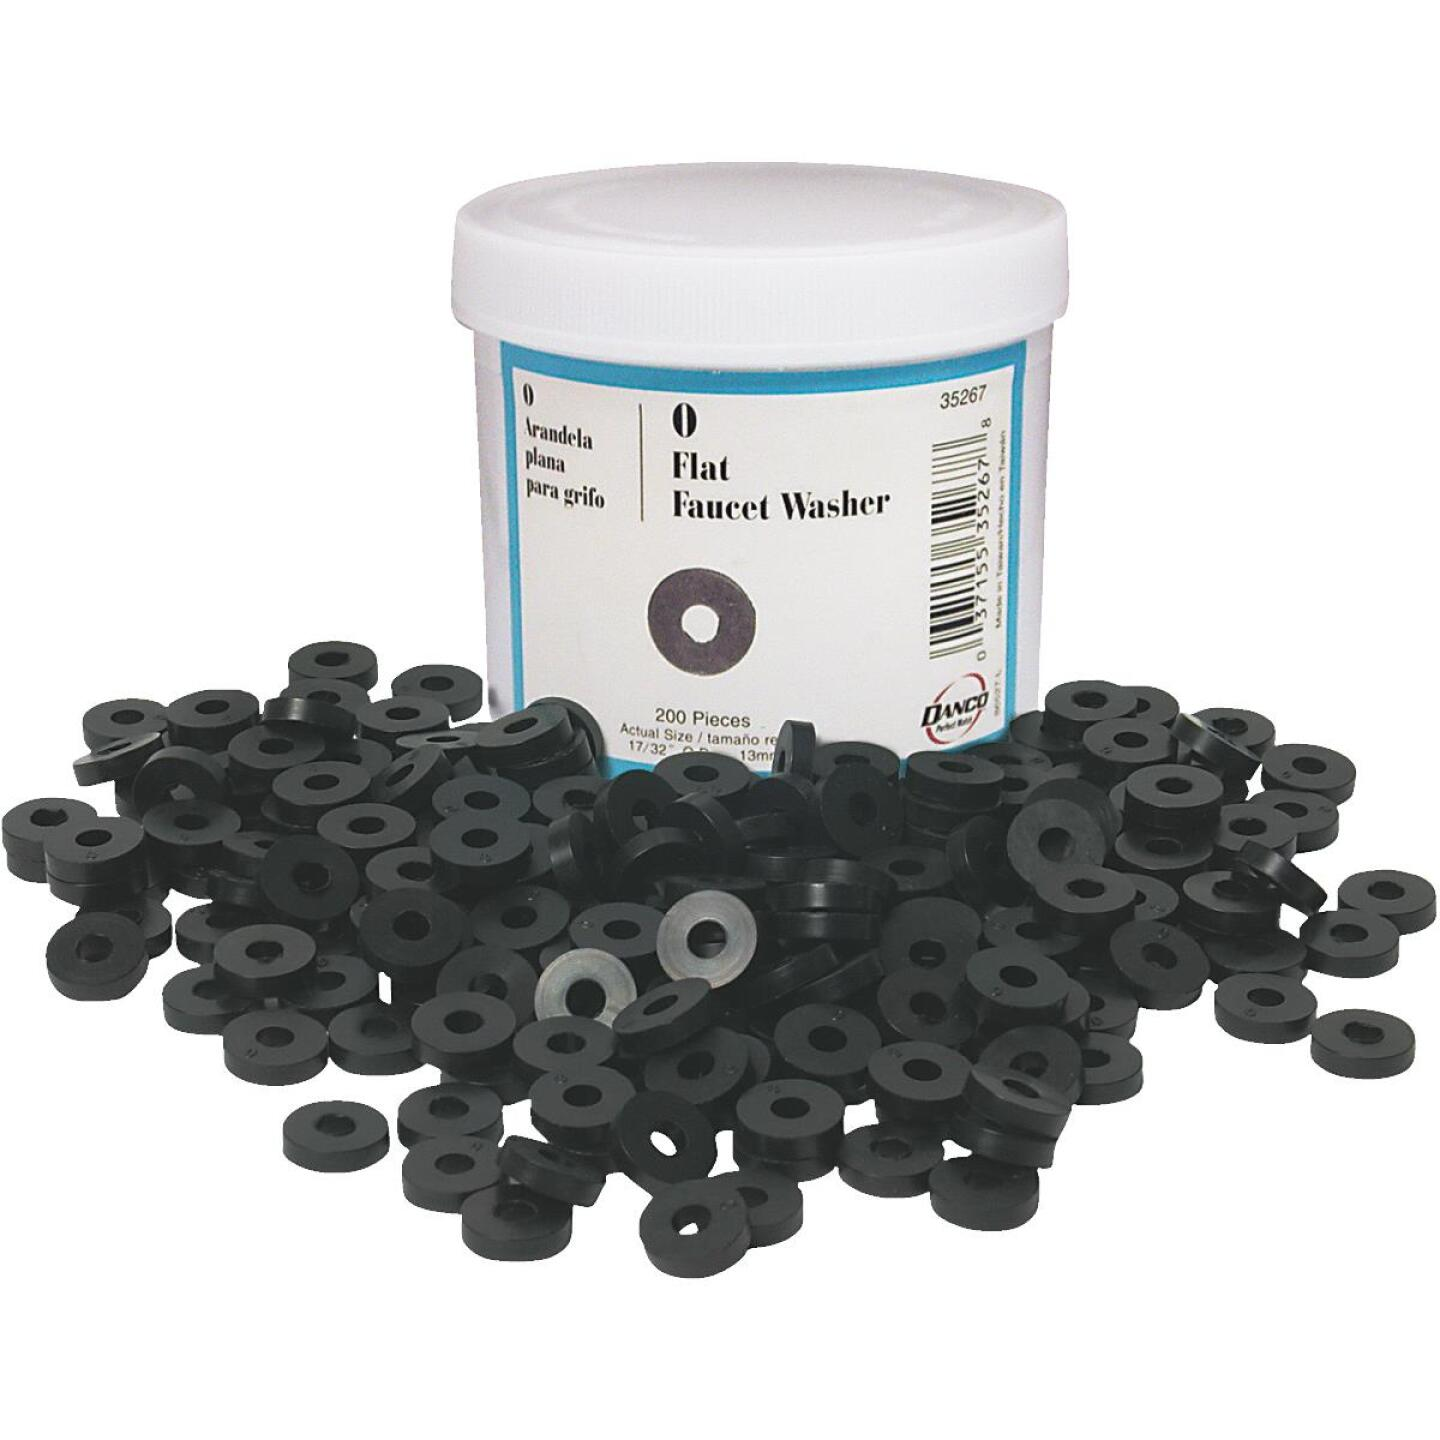 Danco 17/32 In. Black Flat Faucet Washer (200 Ct.) Image 1